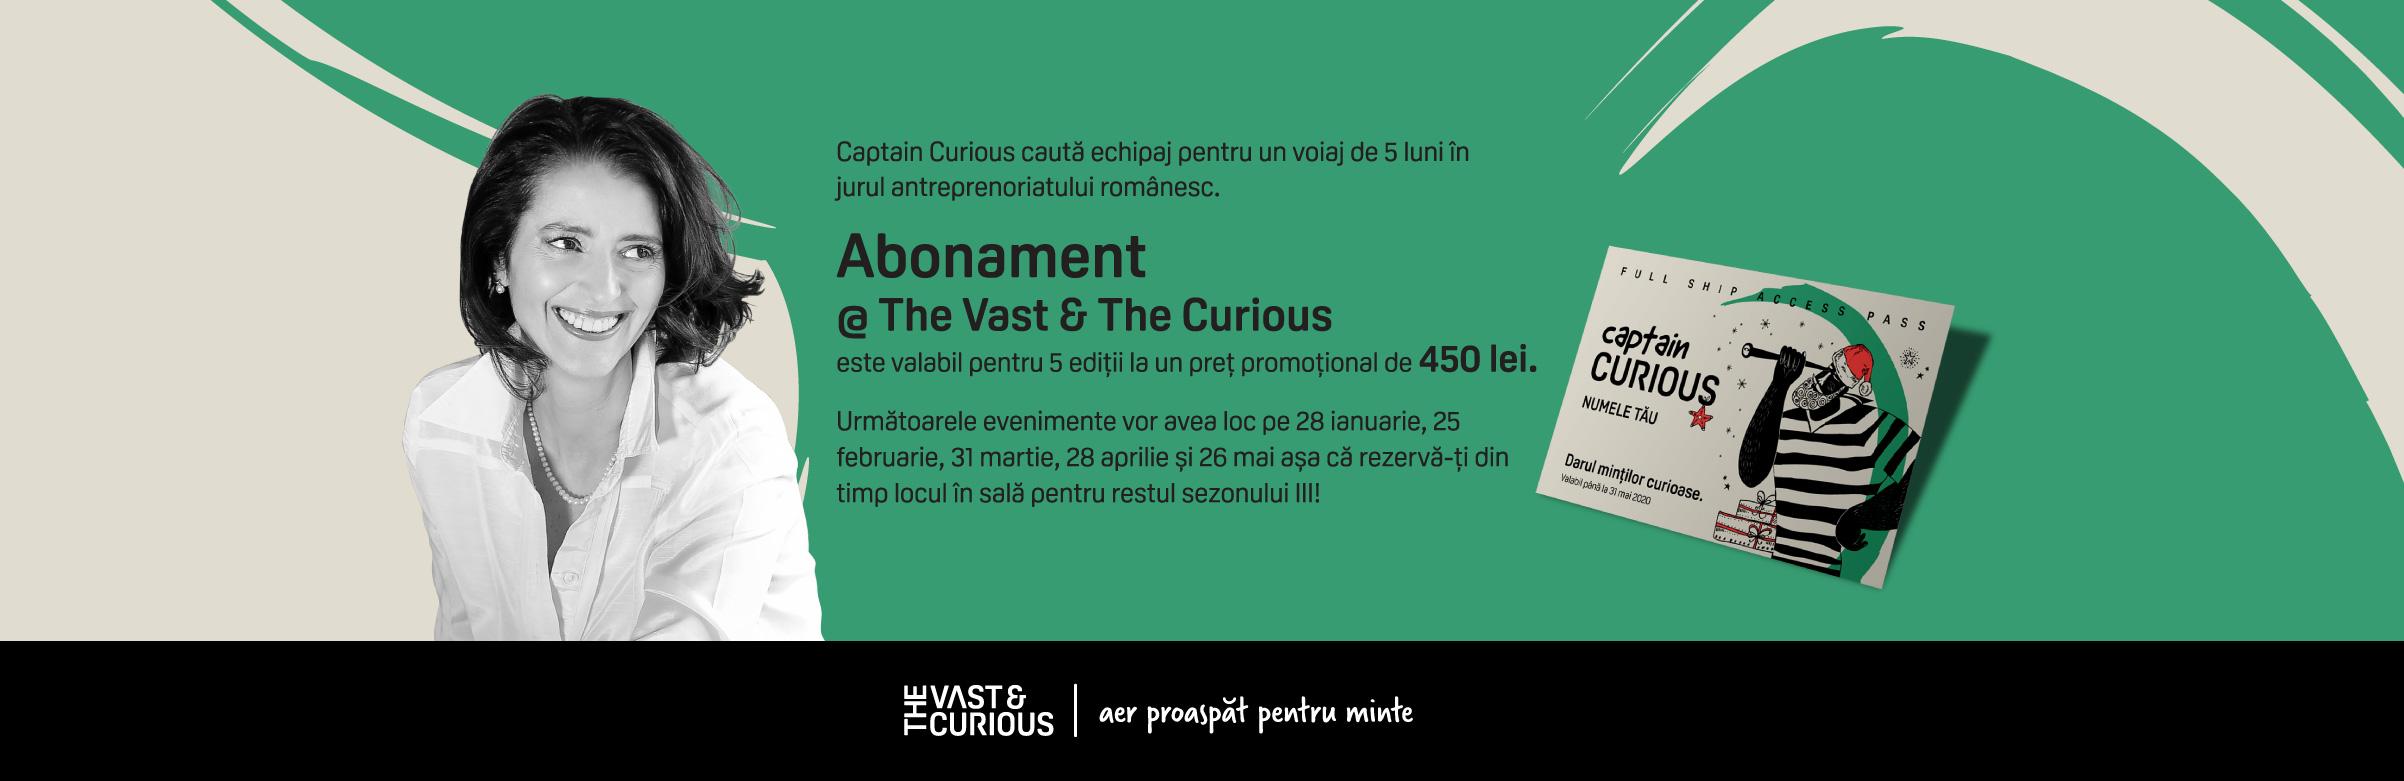 Abonament The Vast&Te Curious - Ediție de Crăciun